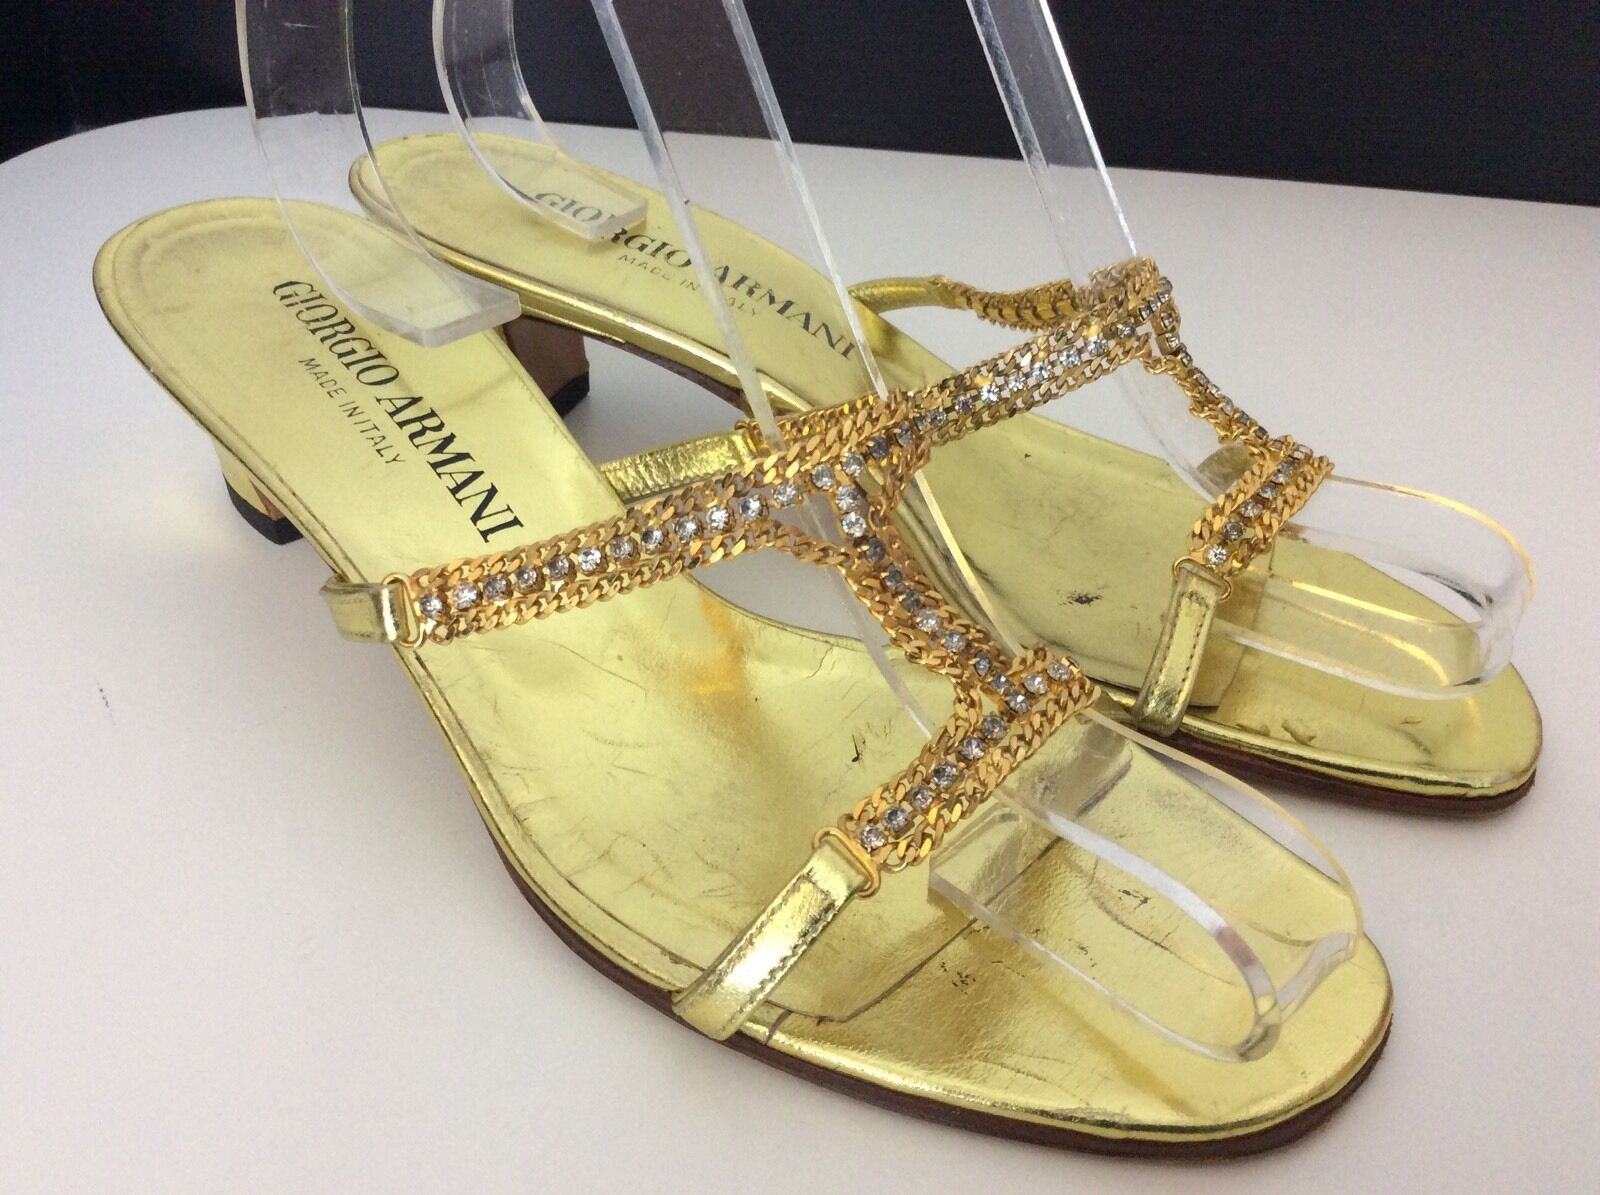 Giorgio armani gold Patent Leather Sling Back shoes Heels Size 36 Uk 3 Stones Di